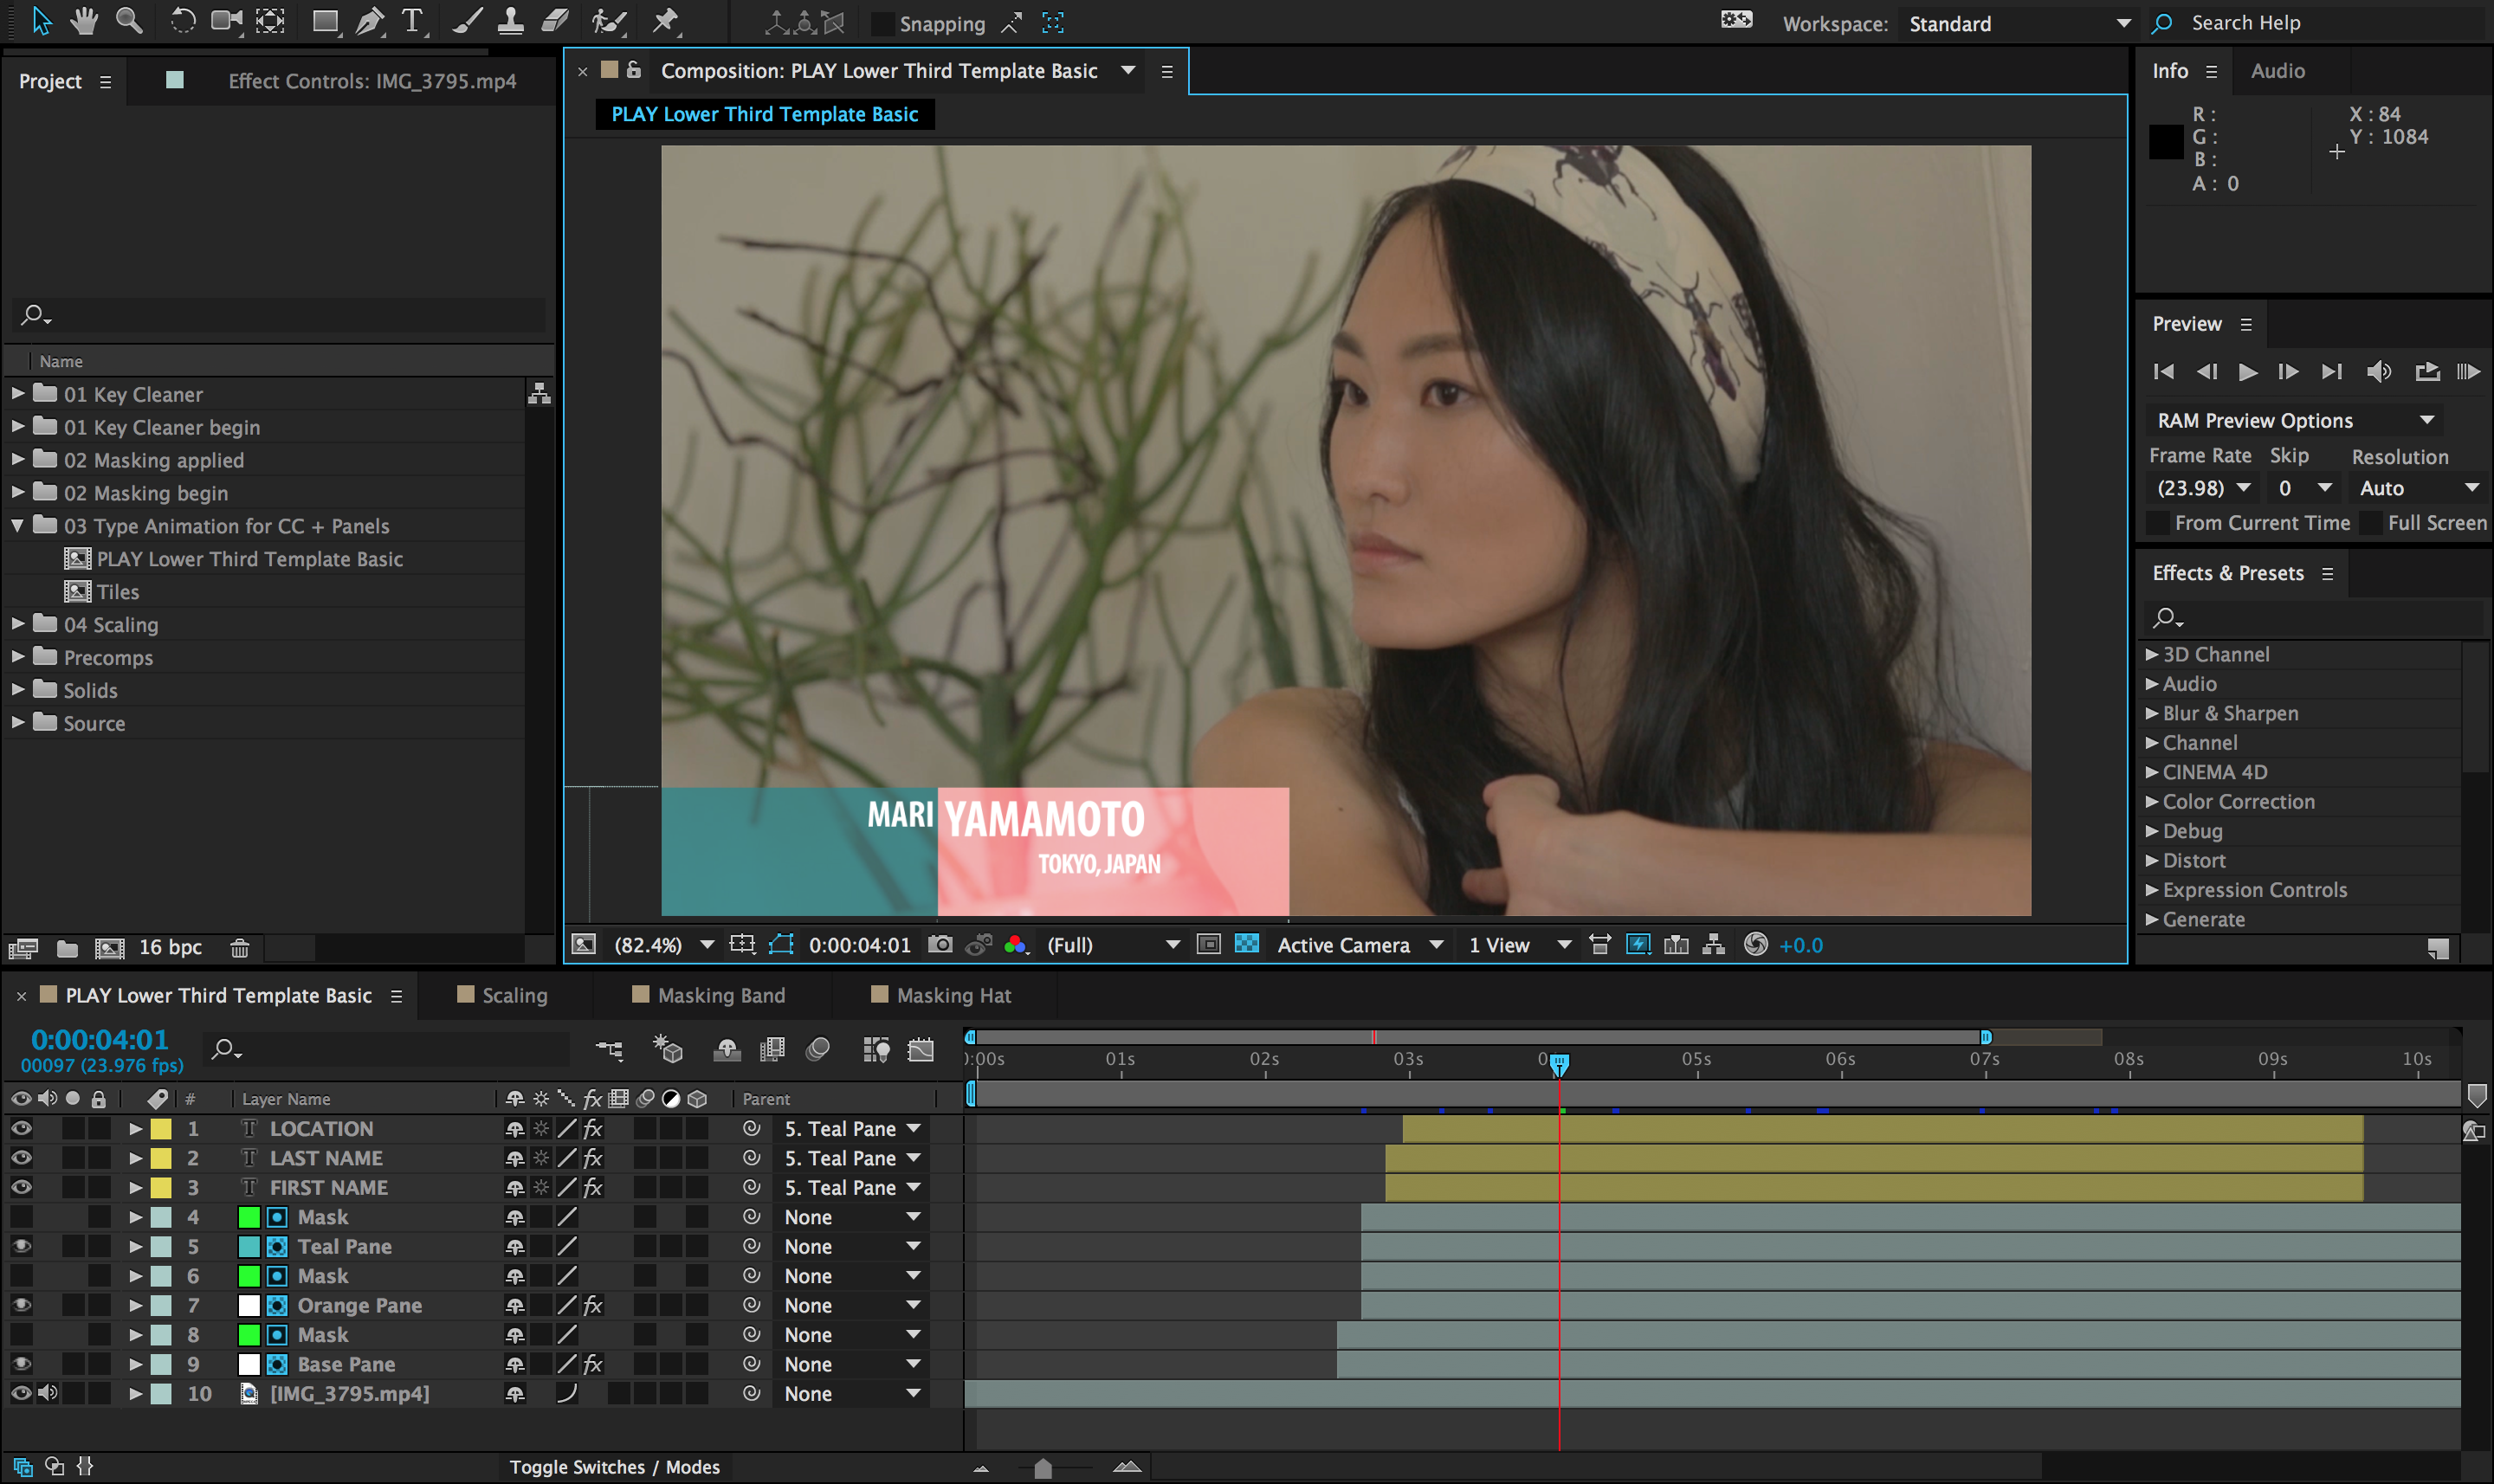 Adobe After Effects CC 2015 female image processing